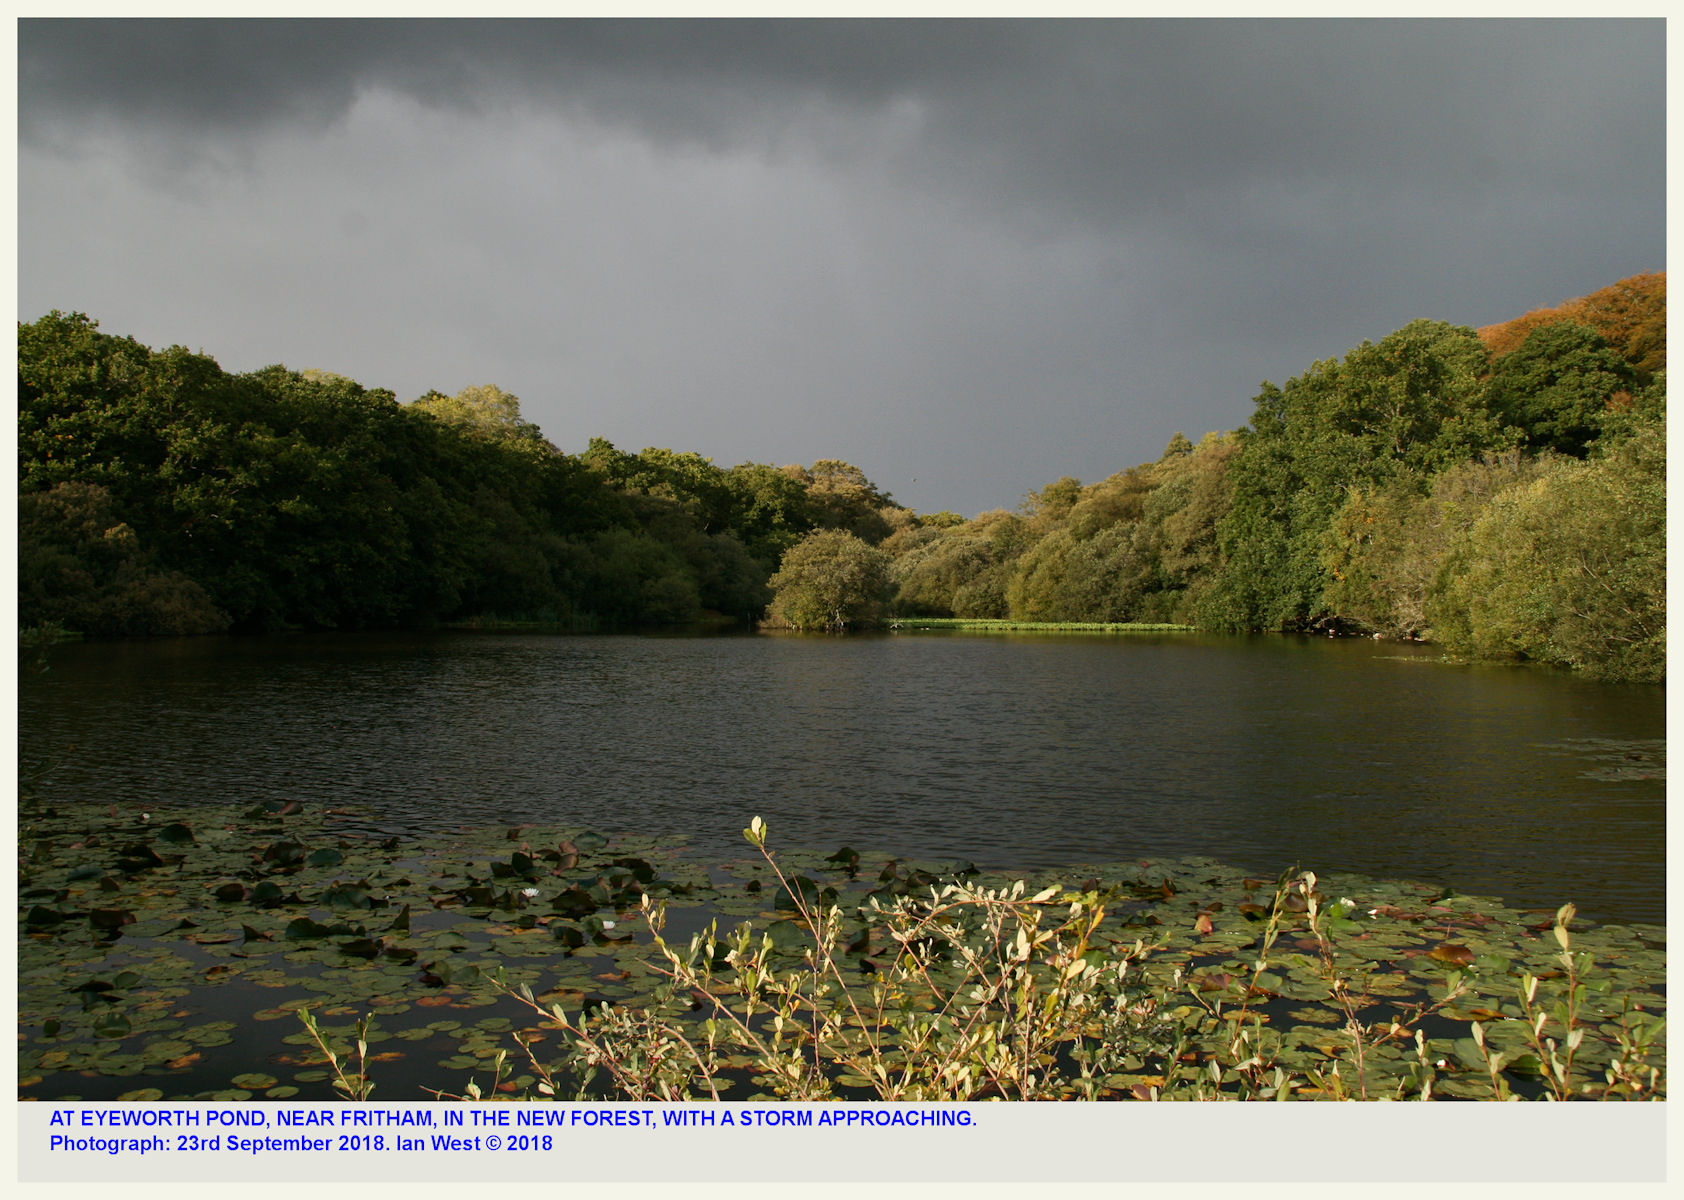 Eyeworth Pond, near Fritham, Hampshire, New Forest National Park, on the Eocene Selsey Formation, as photographed in stormy weather in the year 2018